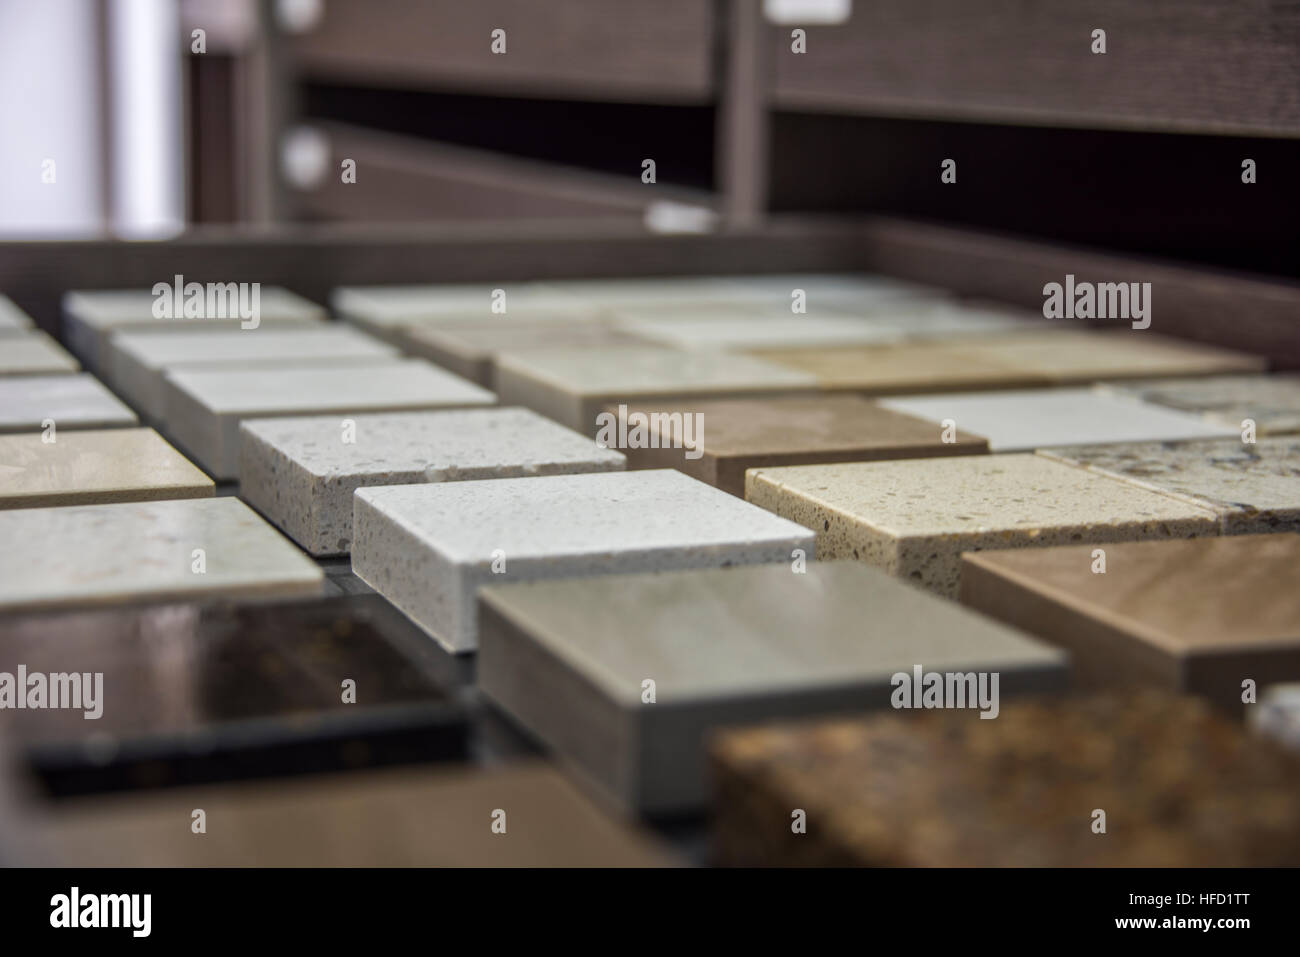 Kitchen counters color samples on store shelves. - Stock Image